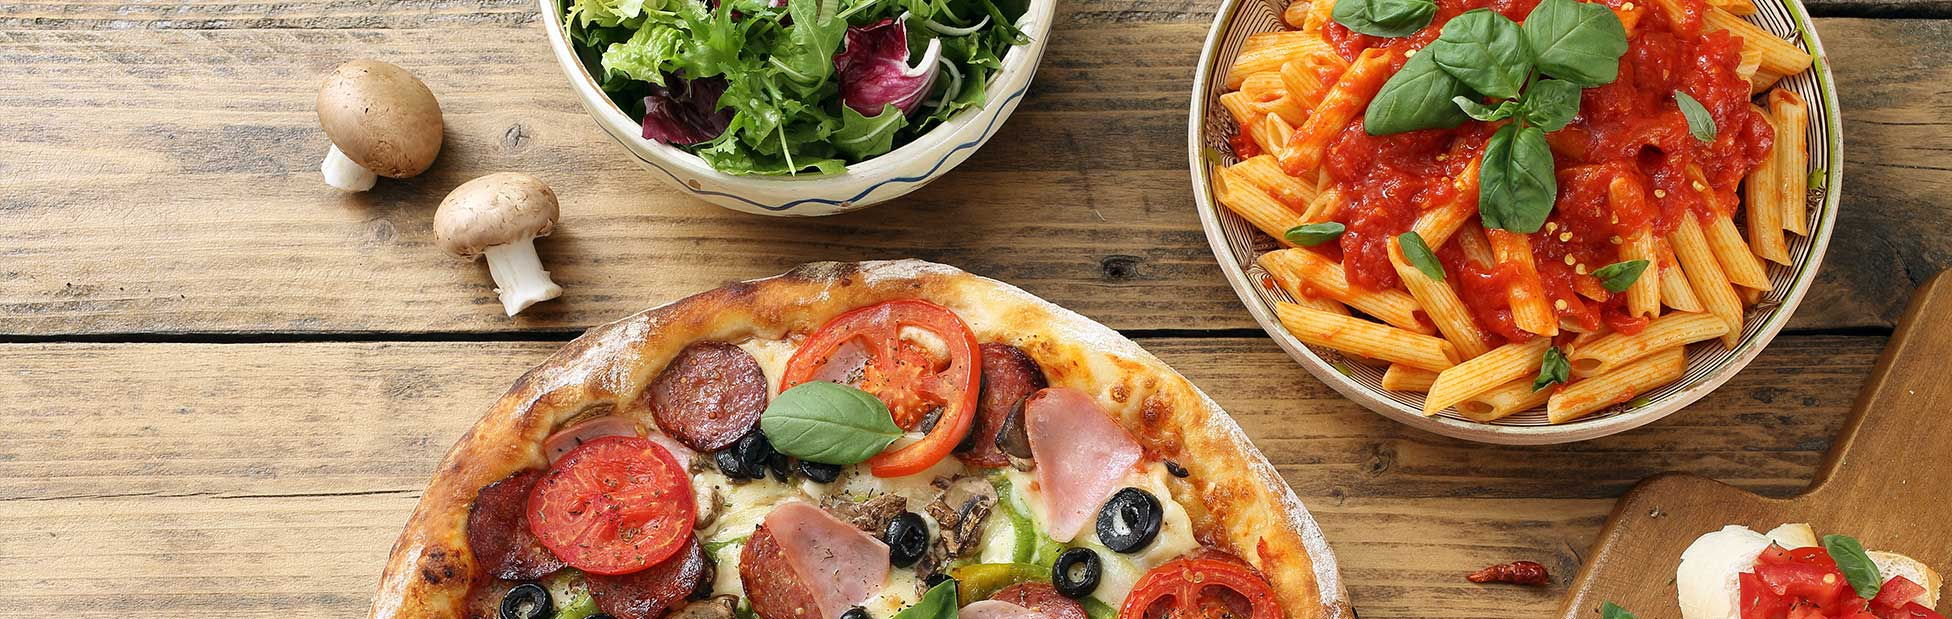 Pizza pasta and salad on rustic wood table top